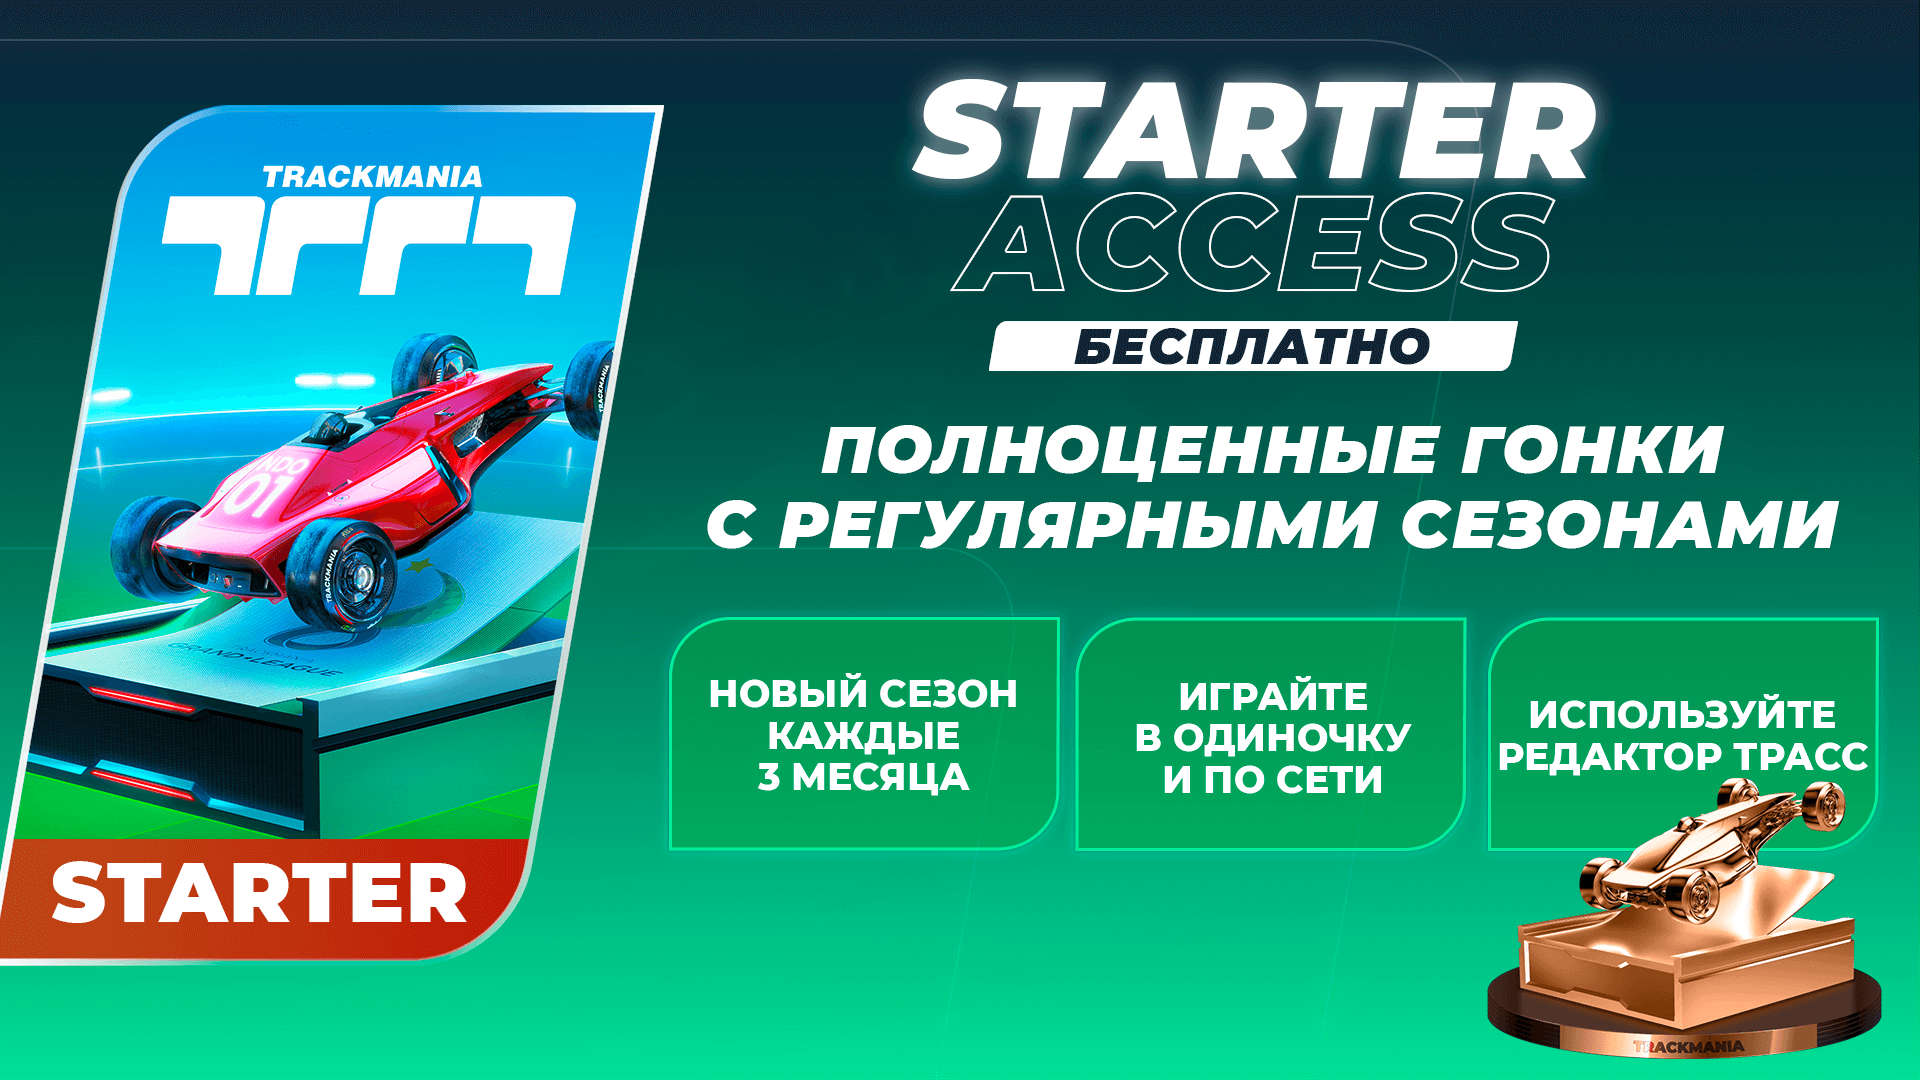 Diesel%2Fproductv2%2Ftrackmania%2Fhome%2Fstarter access%2FTRACKMANIA STATEREDITION PCALL Mock Up 1920x1080 RUS 1920x1080 21c7bbf7d125459c282875d0f12f5ad0dd833c97 game art logo